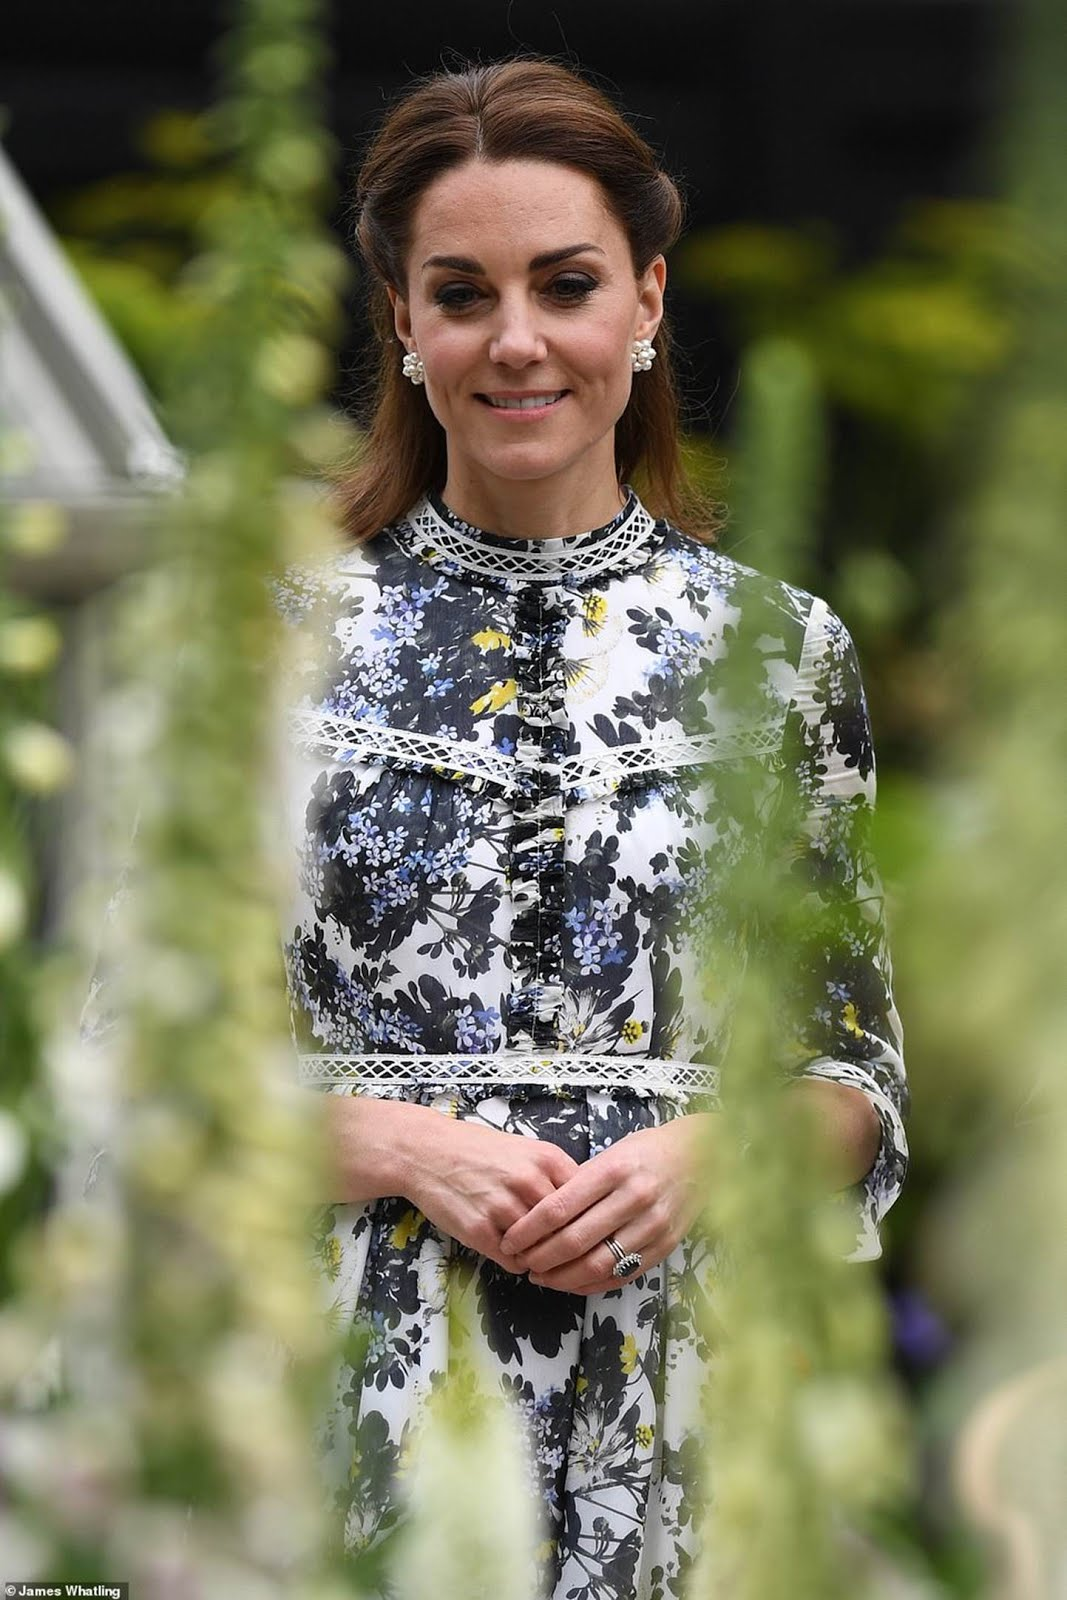 Duchess Kate at The Chelsea Flower Show